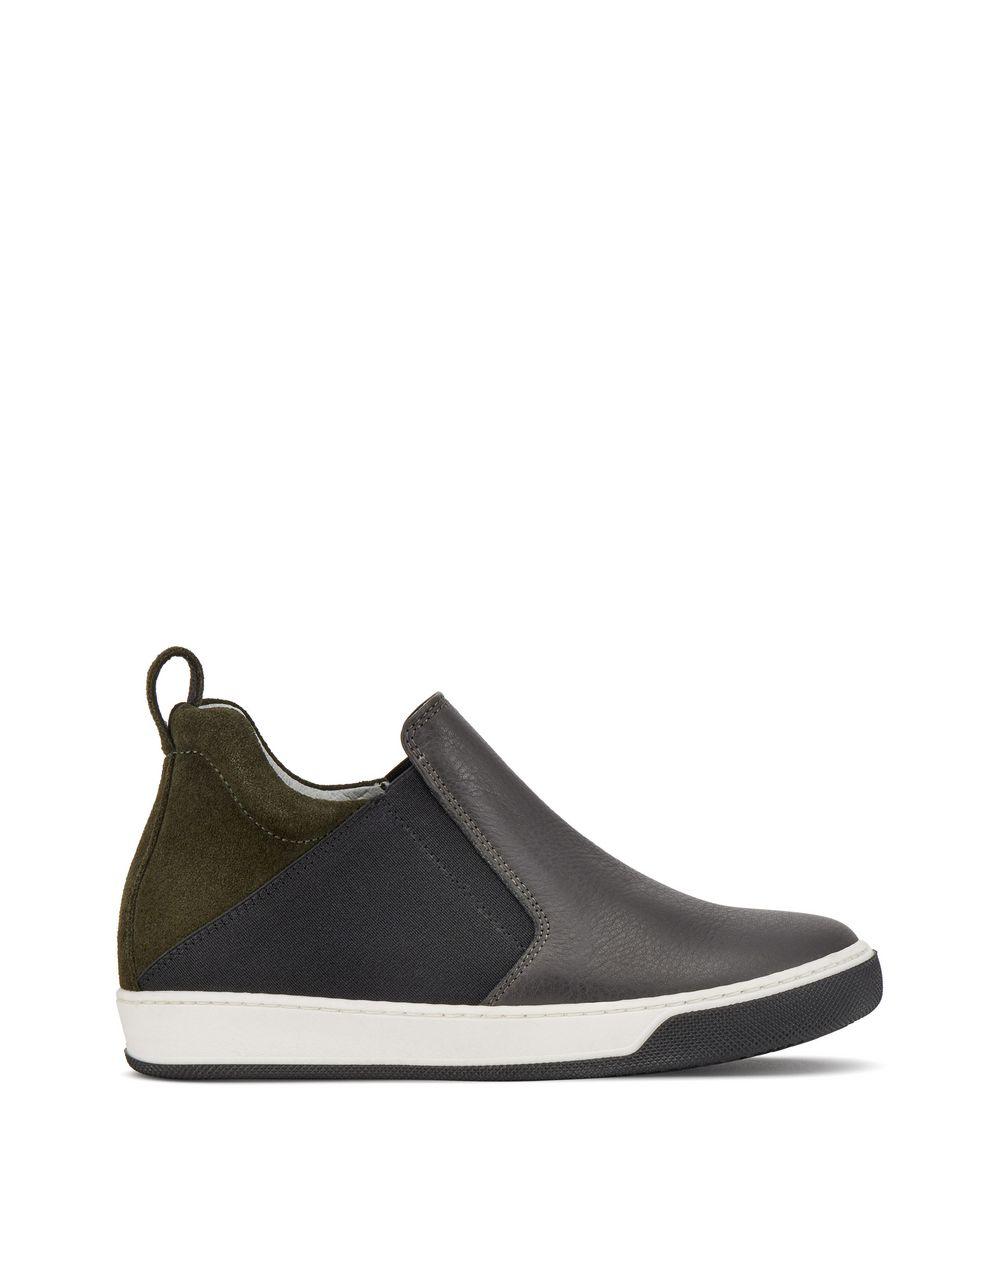 GRAY THREE-TONE SNEAKERS - Lanvin